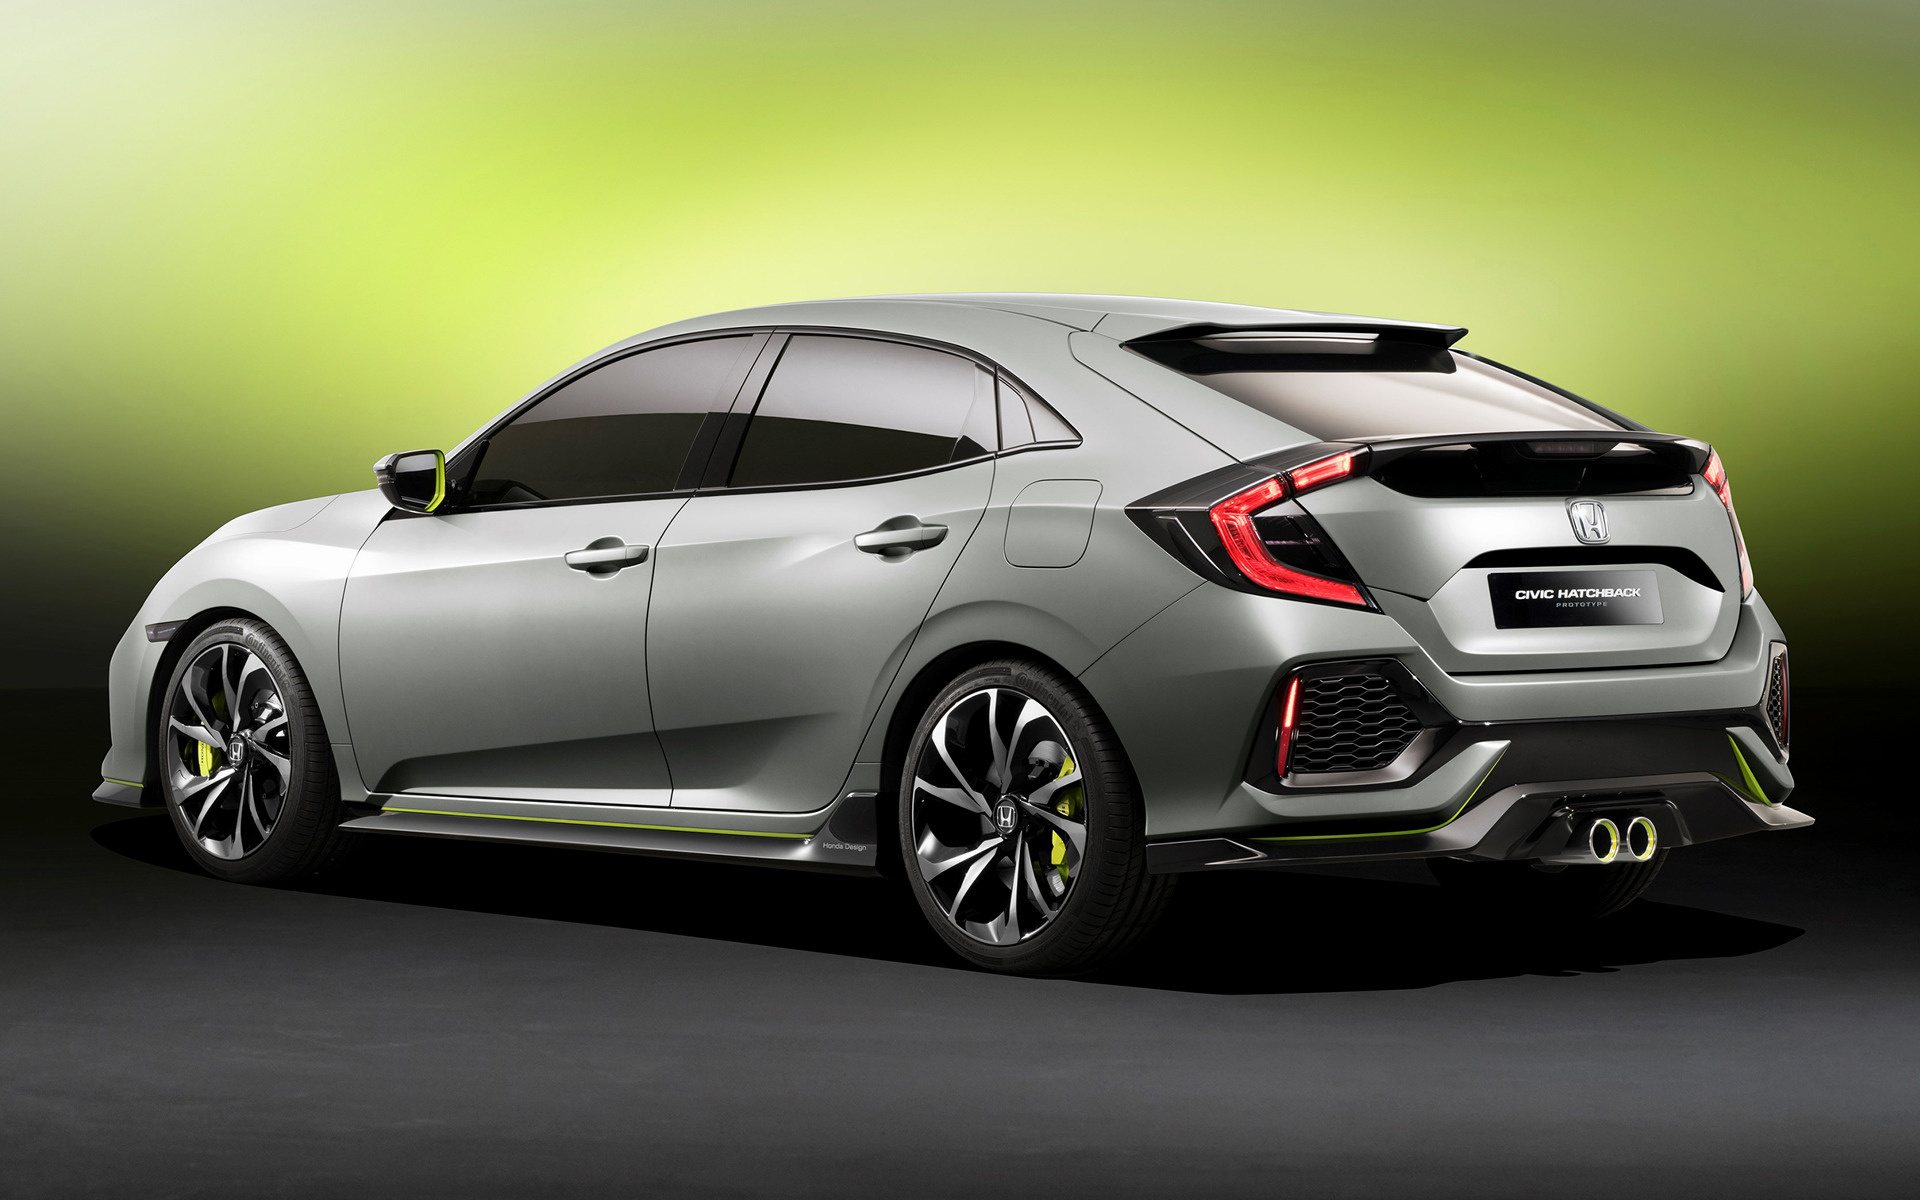 Honda Civic Hatchback Prototype 2016 Wallpapers And Hd